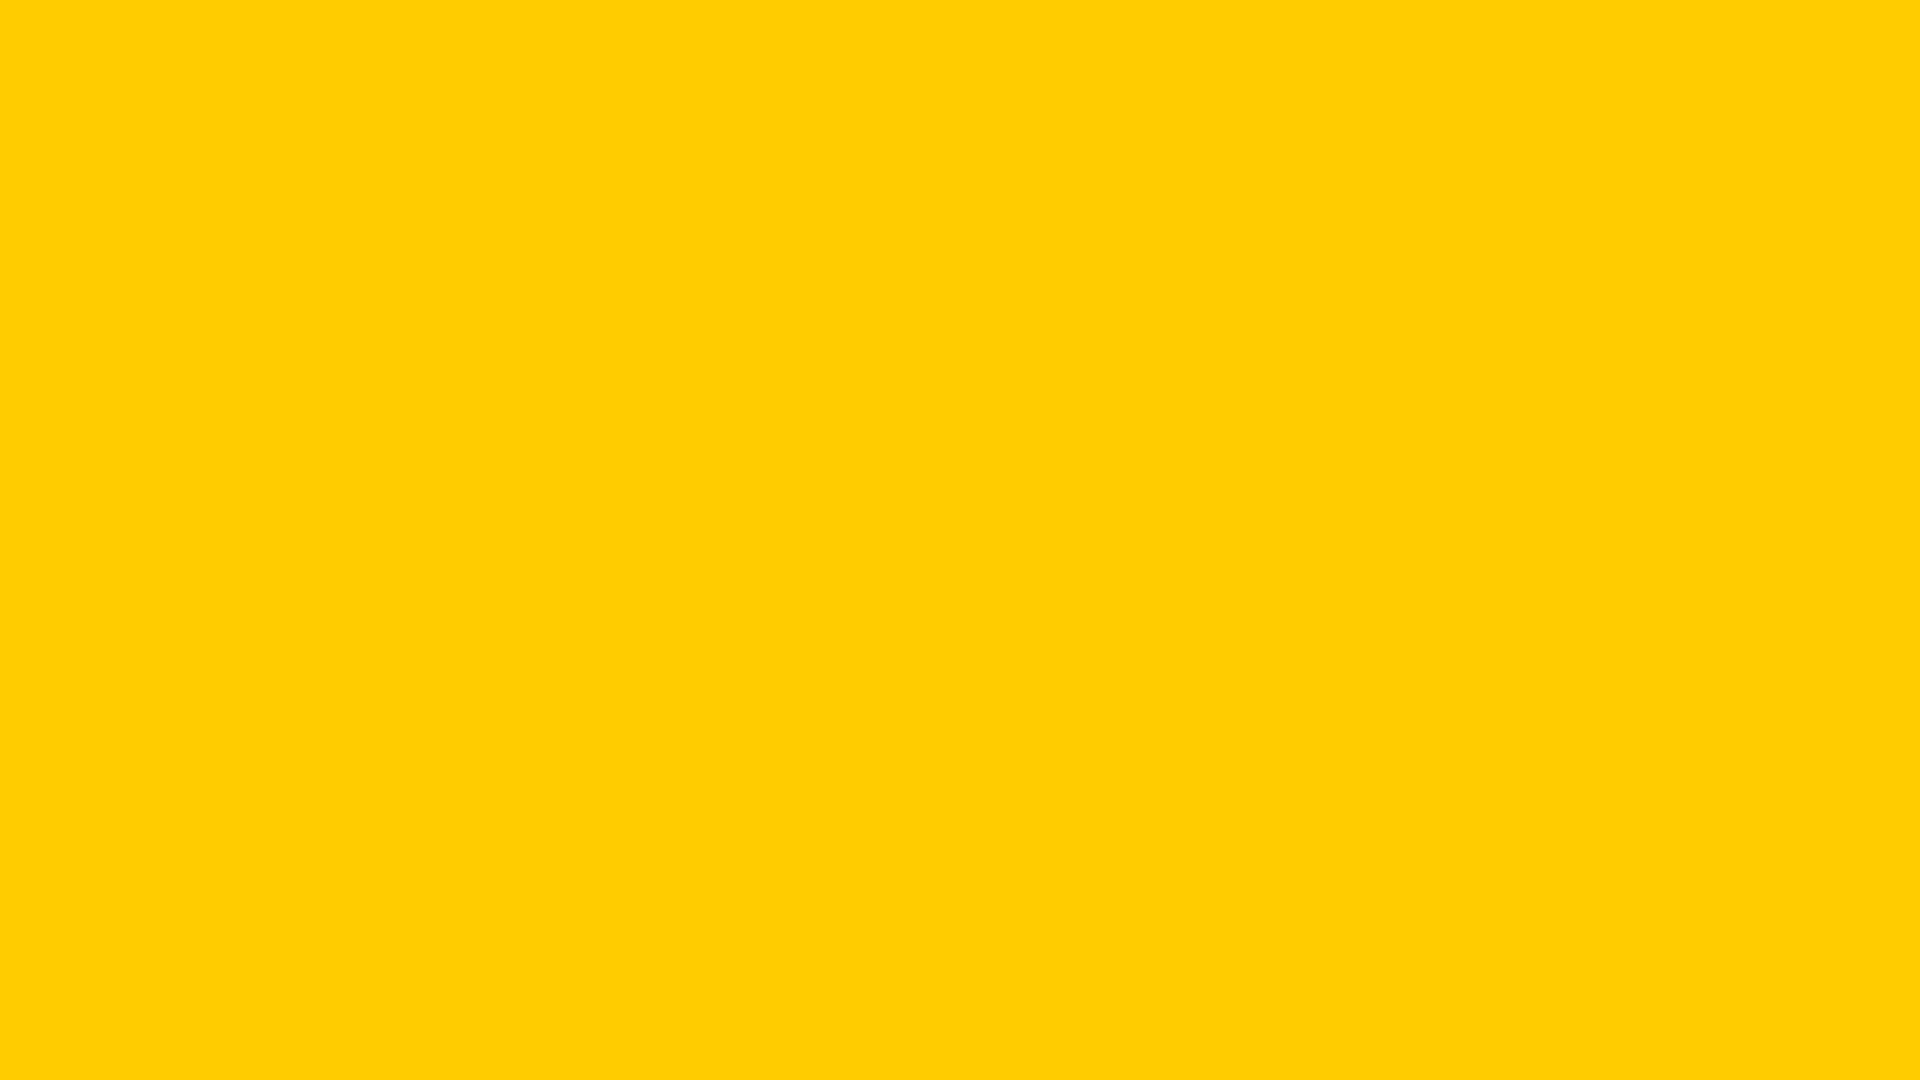 Gold solid color background view and download the below background 1920x1080